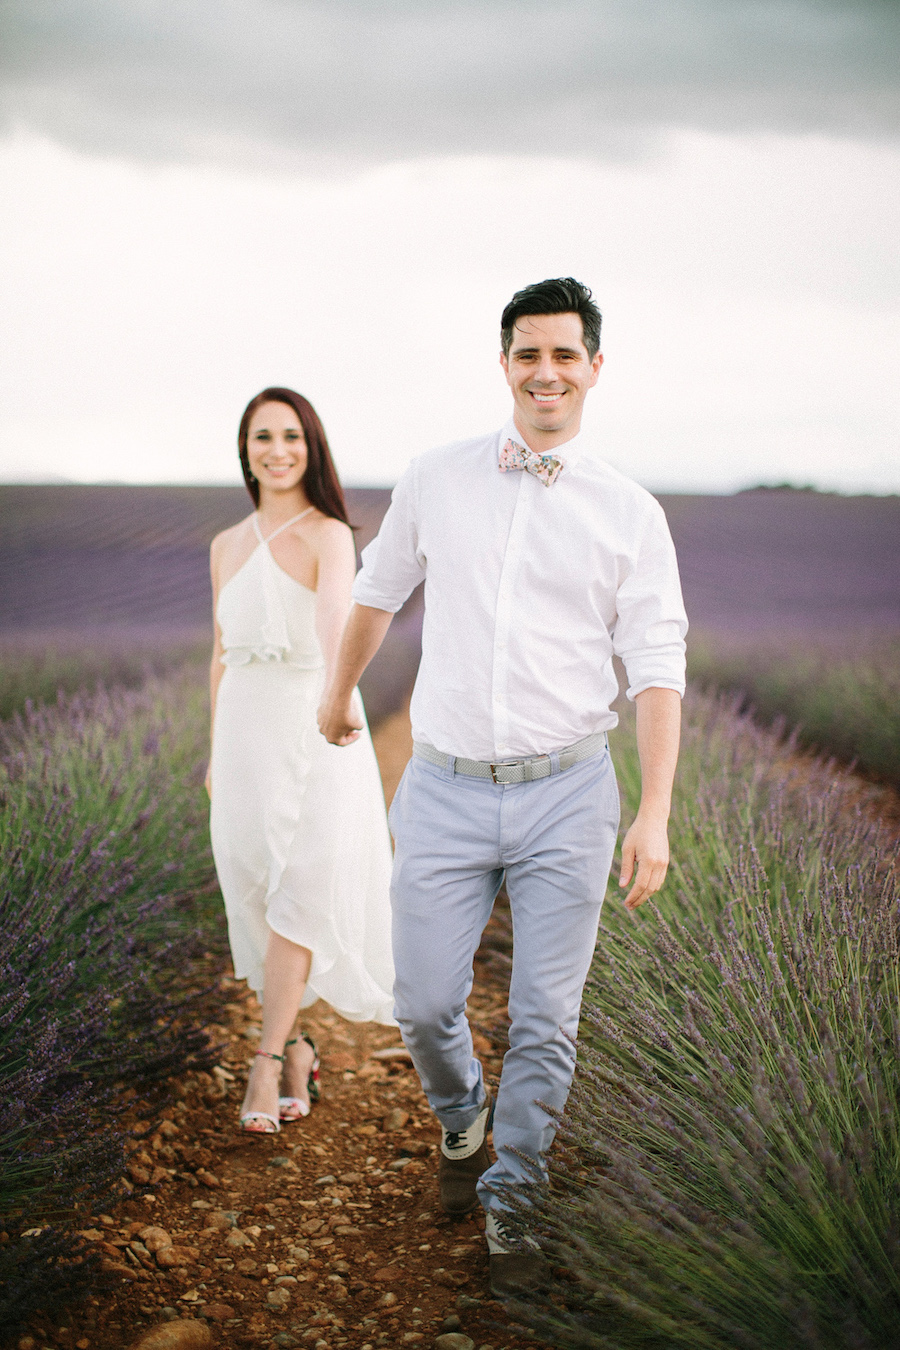 saya-photography-pre-wedding-provence-lavander-field-6.jpg